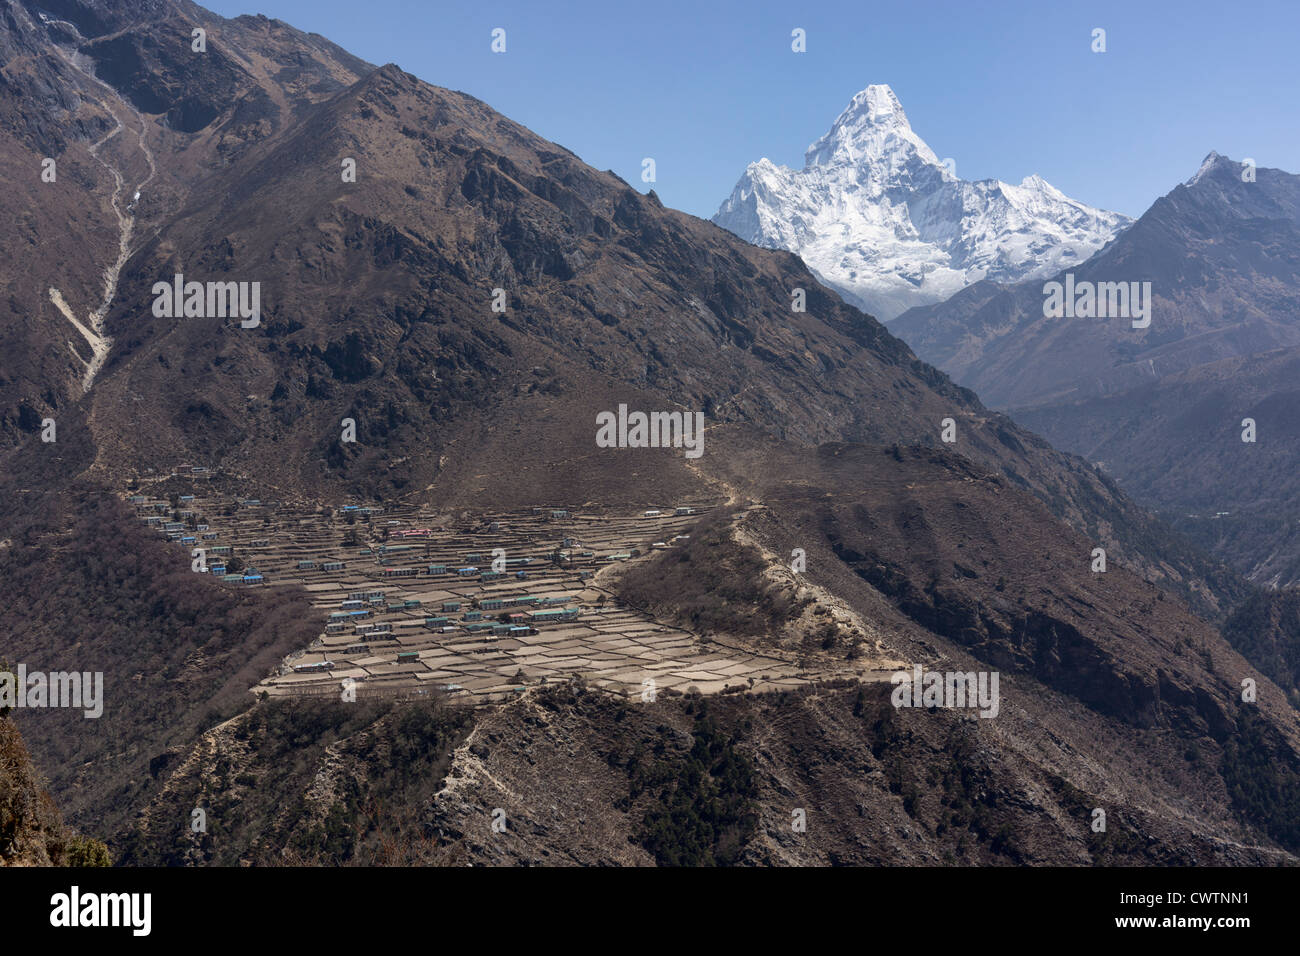 Khumjung village in Nepal with Ama Dablam in the background - Stock Image